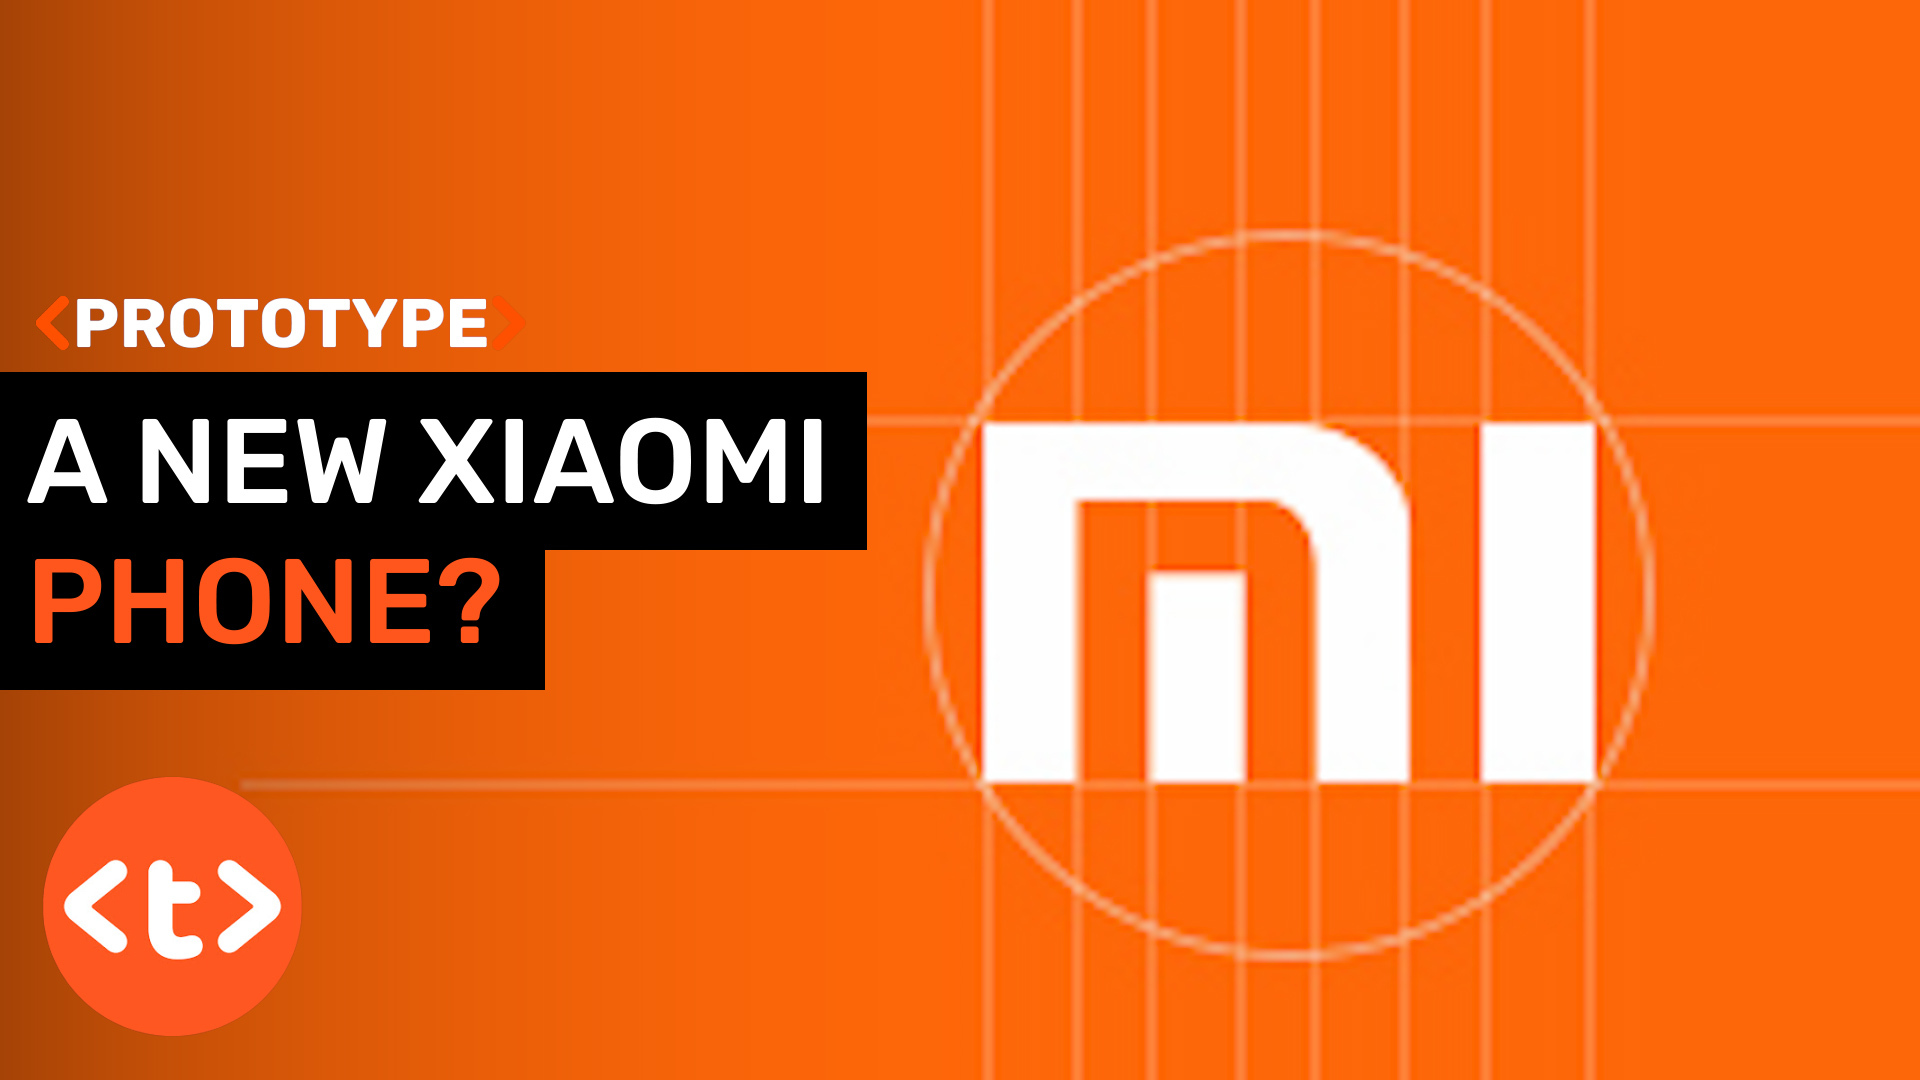 We got our hands on Xiaomi's new super secret phone. Here's our review.